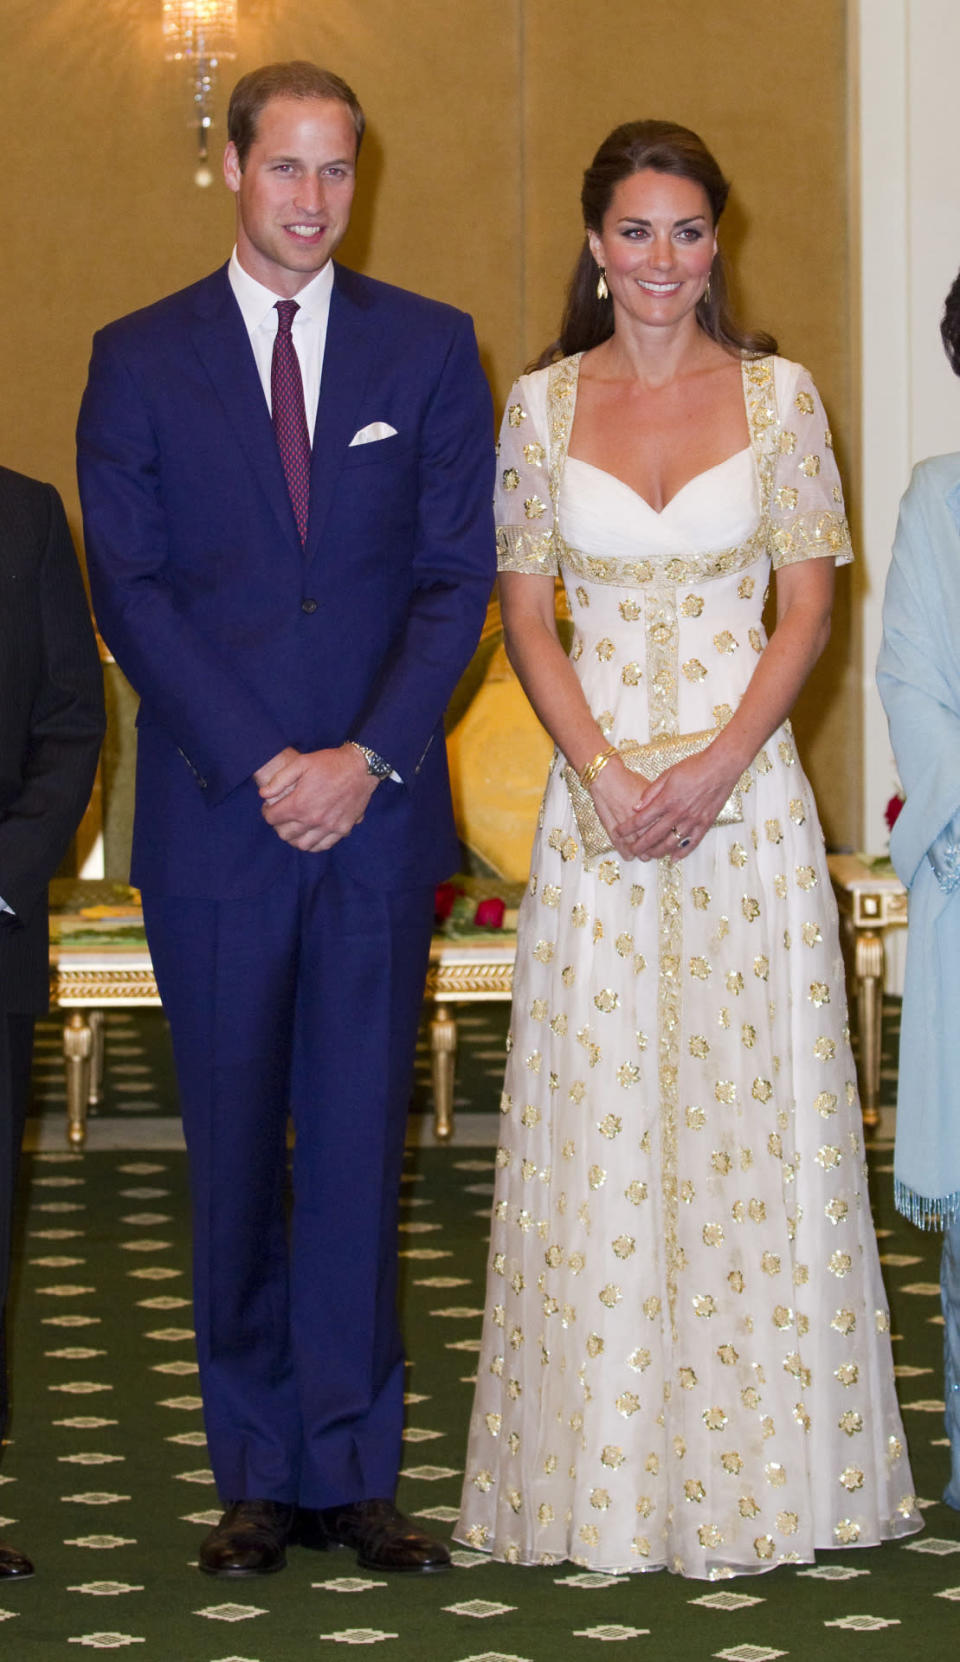 <p>The Duchess attended a dinner with the King of Malaysia wearing a head-turning custom Alexander McQueen gown. Designed in a cream shade with gold embroidery, Kate carried a golden clutch by Wilbur and Gussie. </p><p><i>[Photo: PA]</i></p>